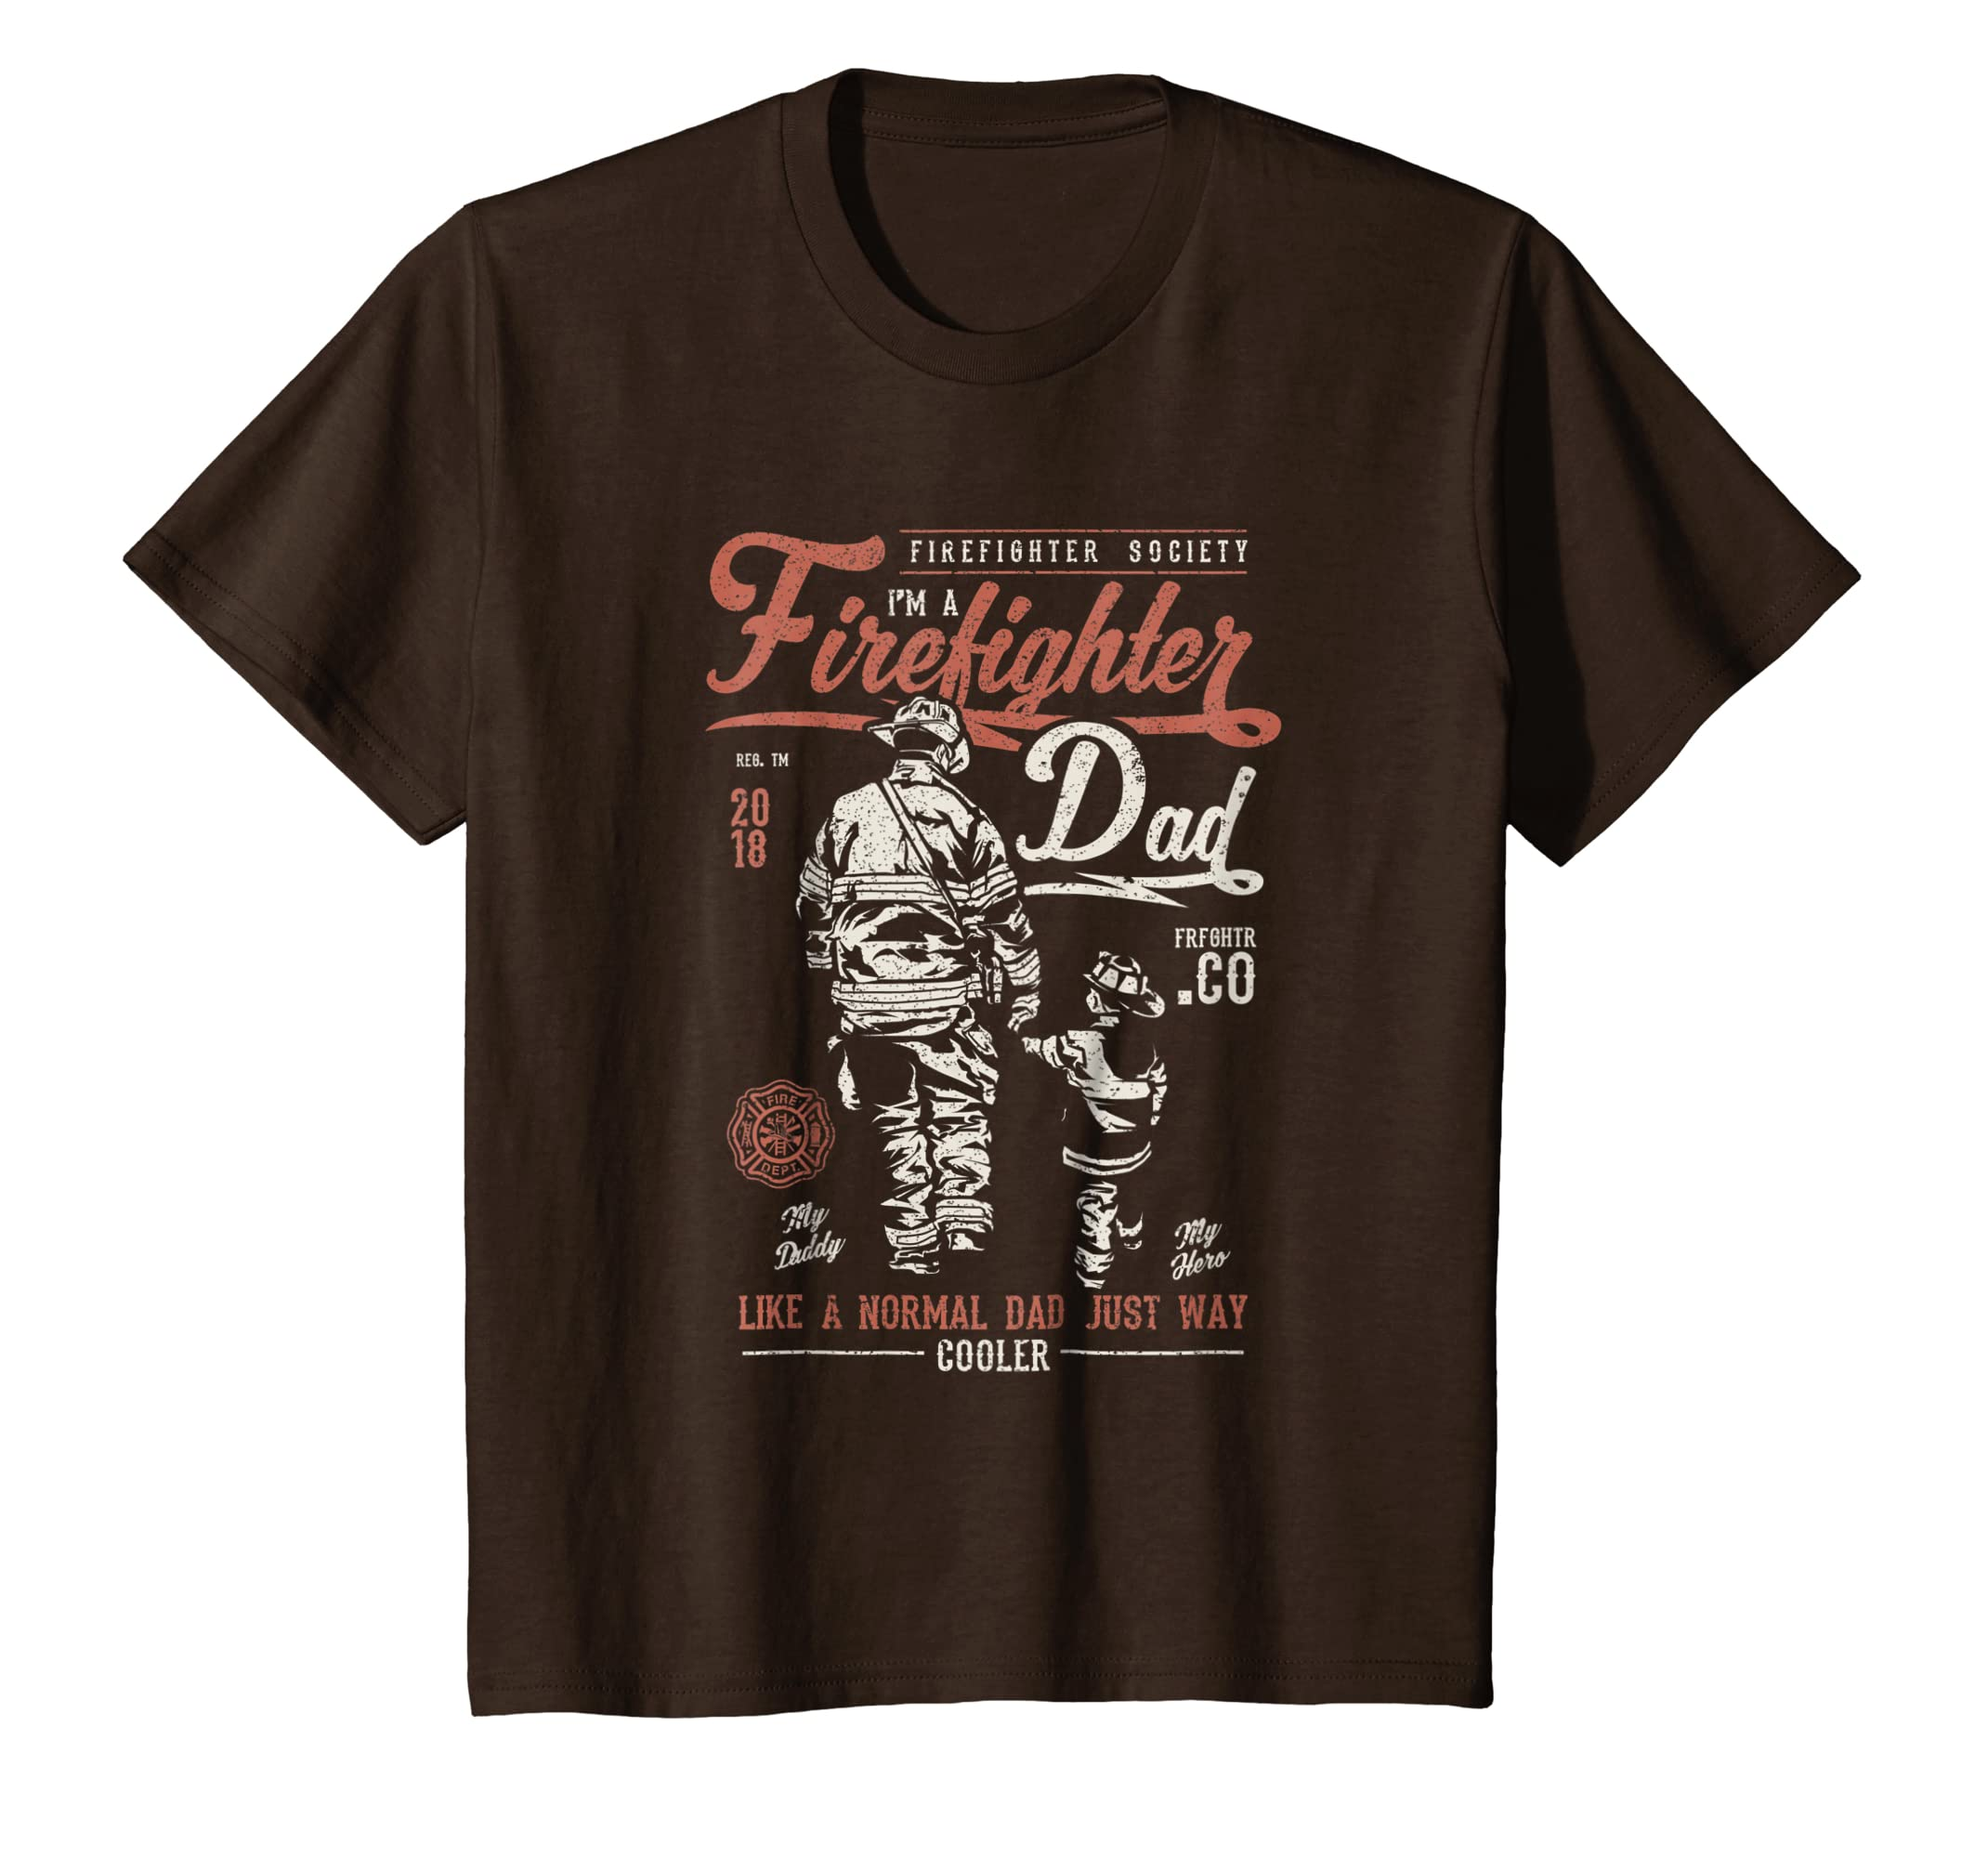 Amazon.com: Firefighter Dad Shirt - Vintage Fireman Gift T-Shirt ...